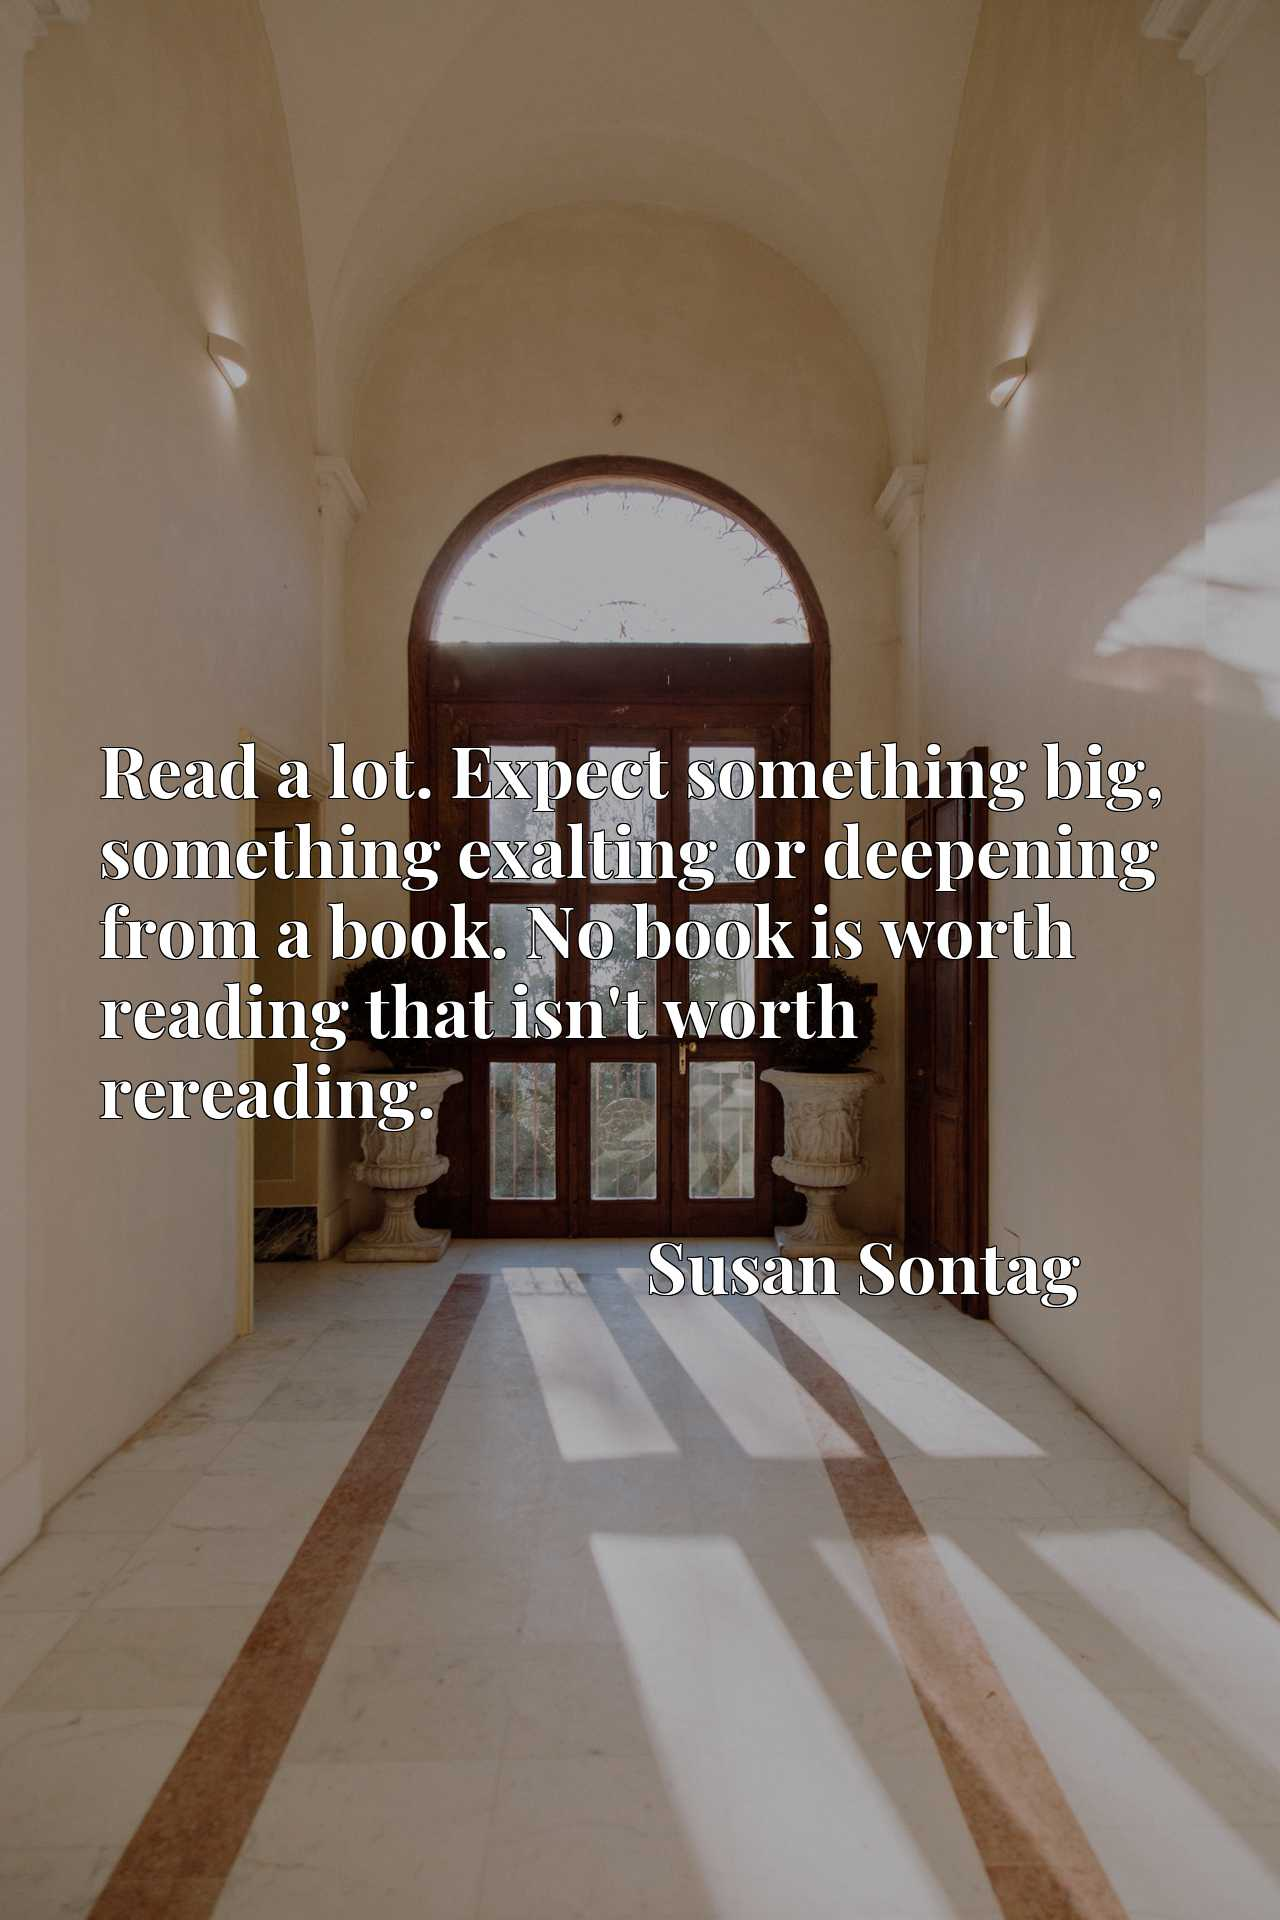 Read a lot. Expect something big, something exalting or deepening from a book. No book is worth reading that isn't worth rereading.